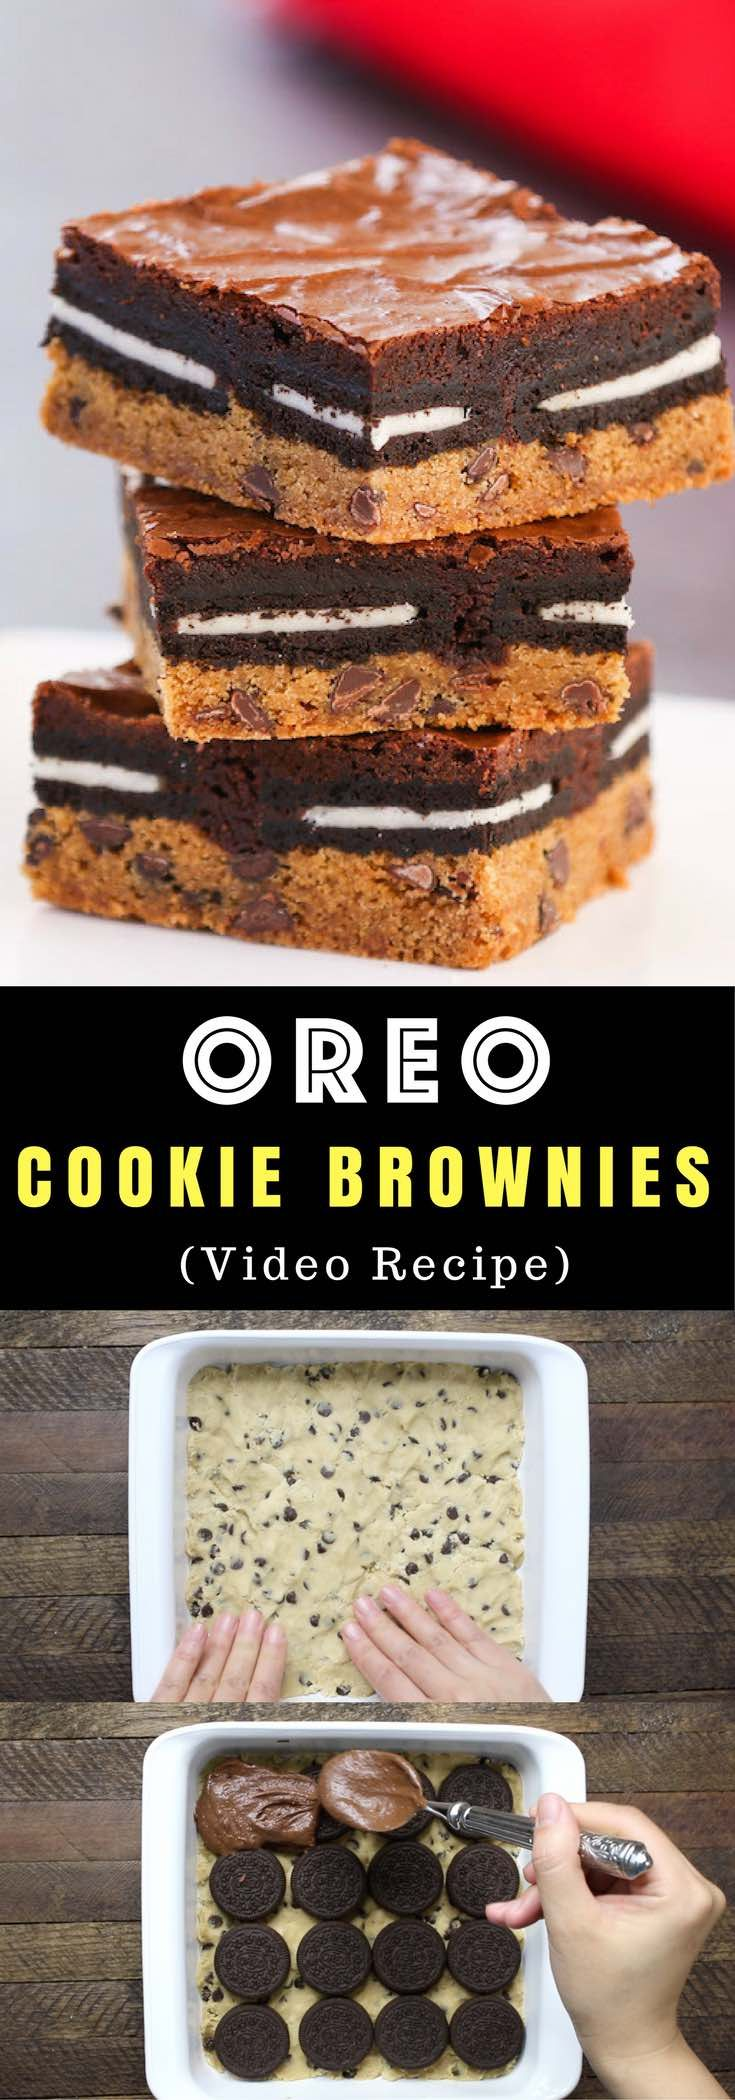 Slutty Brownies – An easy and fun treat that everyone will love. All you need is a few simple recipes: refrigerated chocolate chip cookie dough, oreos, brownie mix, egg, oil and water. So Good! Party food, party dessert recipes, vegetarian. Video recipe.